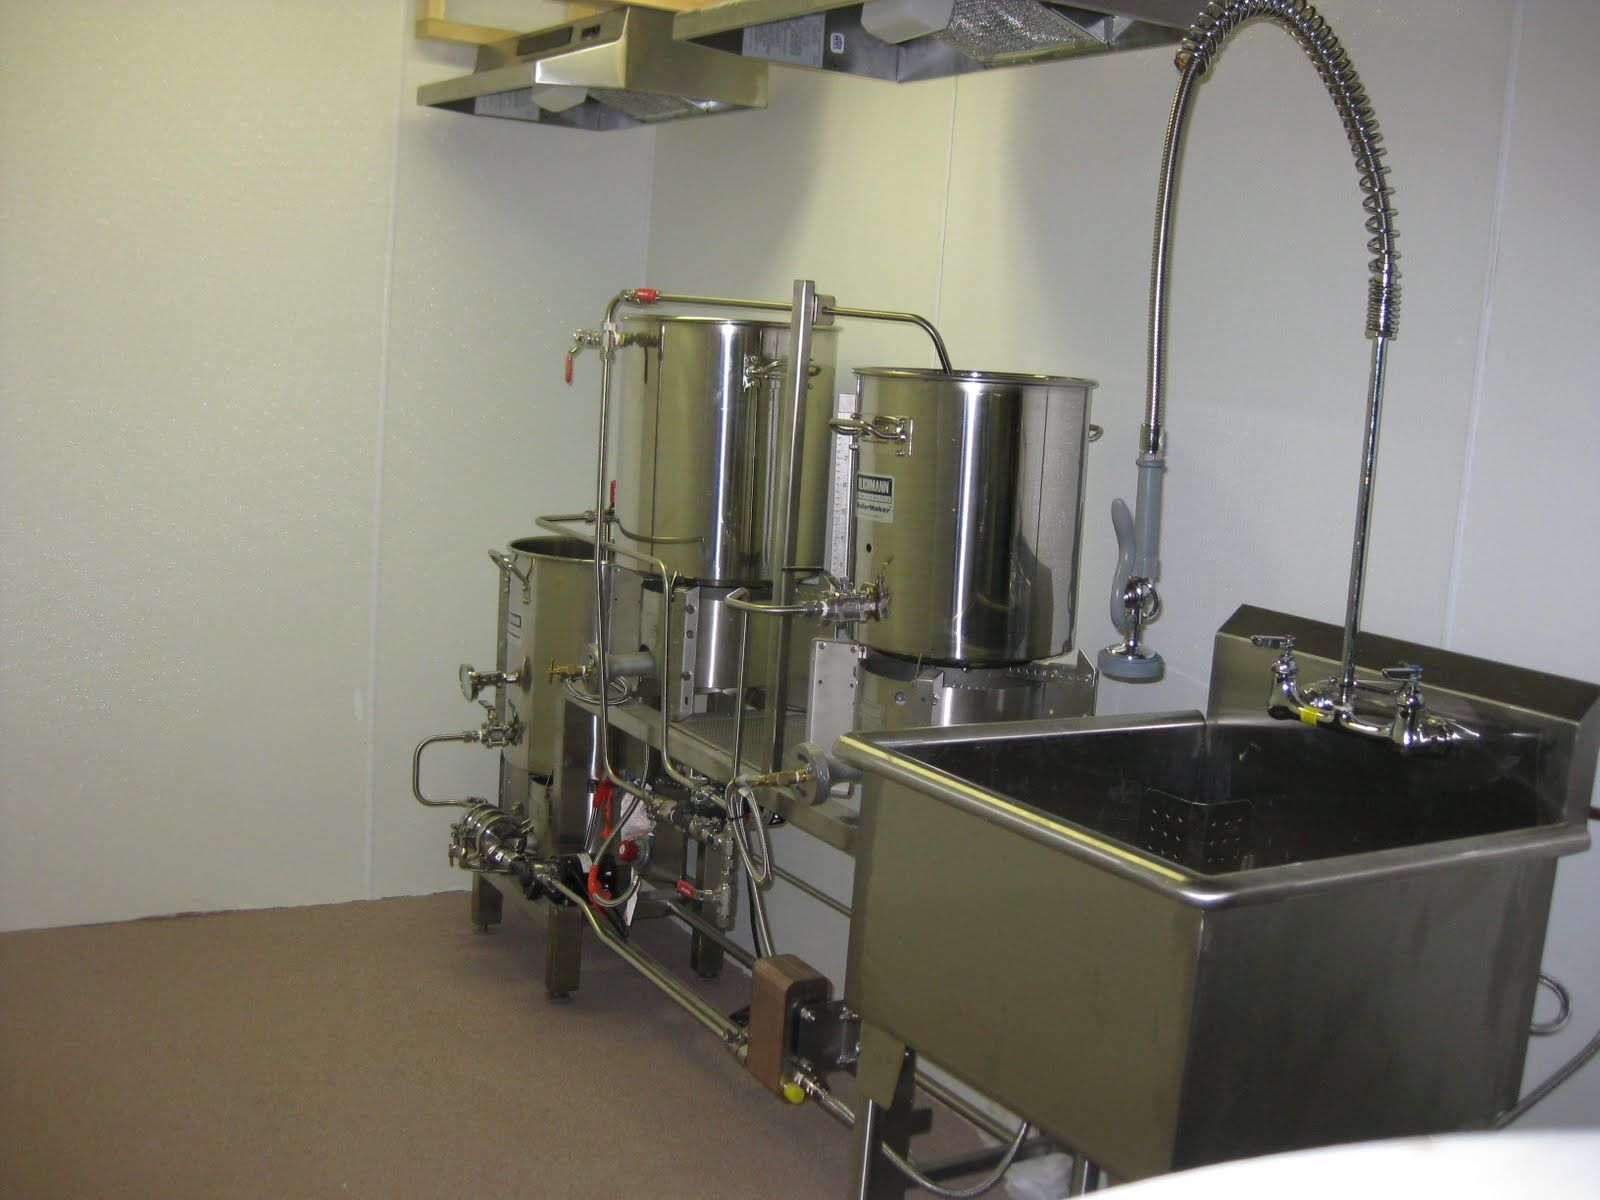 658 best Homebrew images on Pinterest | Brewing equipment, Craft ...